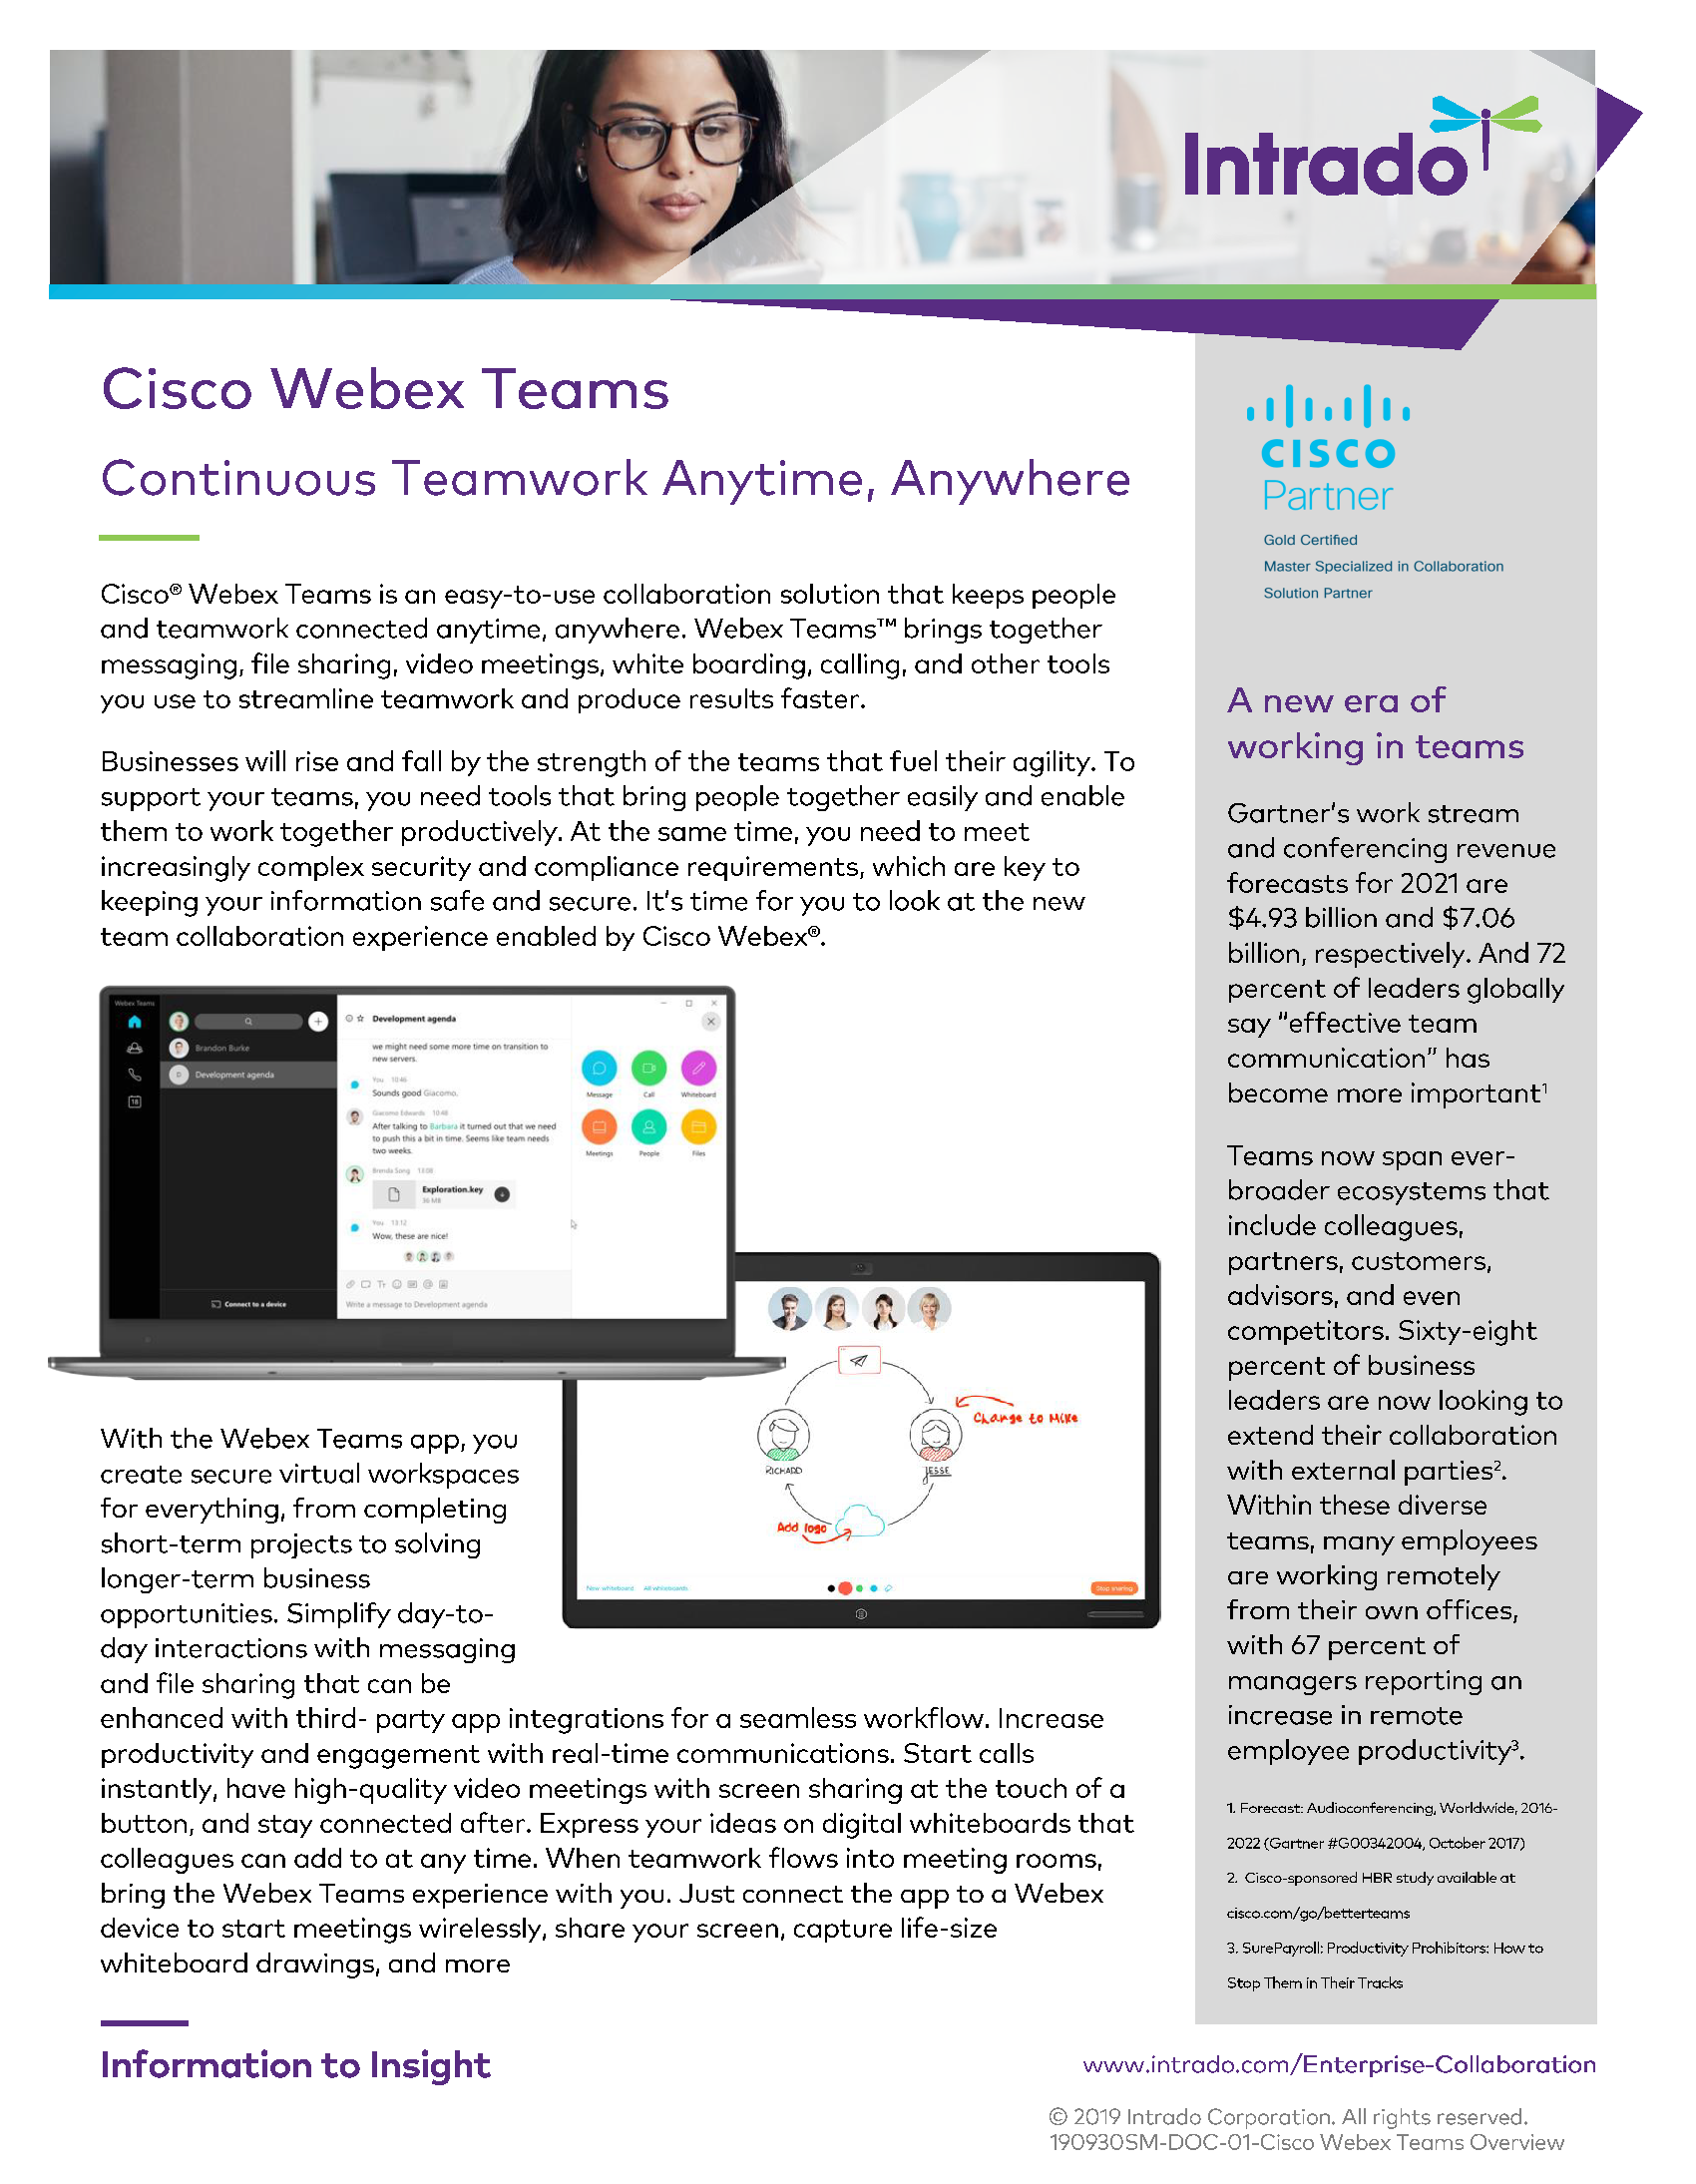 Cisco Webex Teams Overview